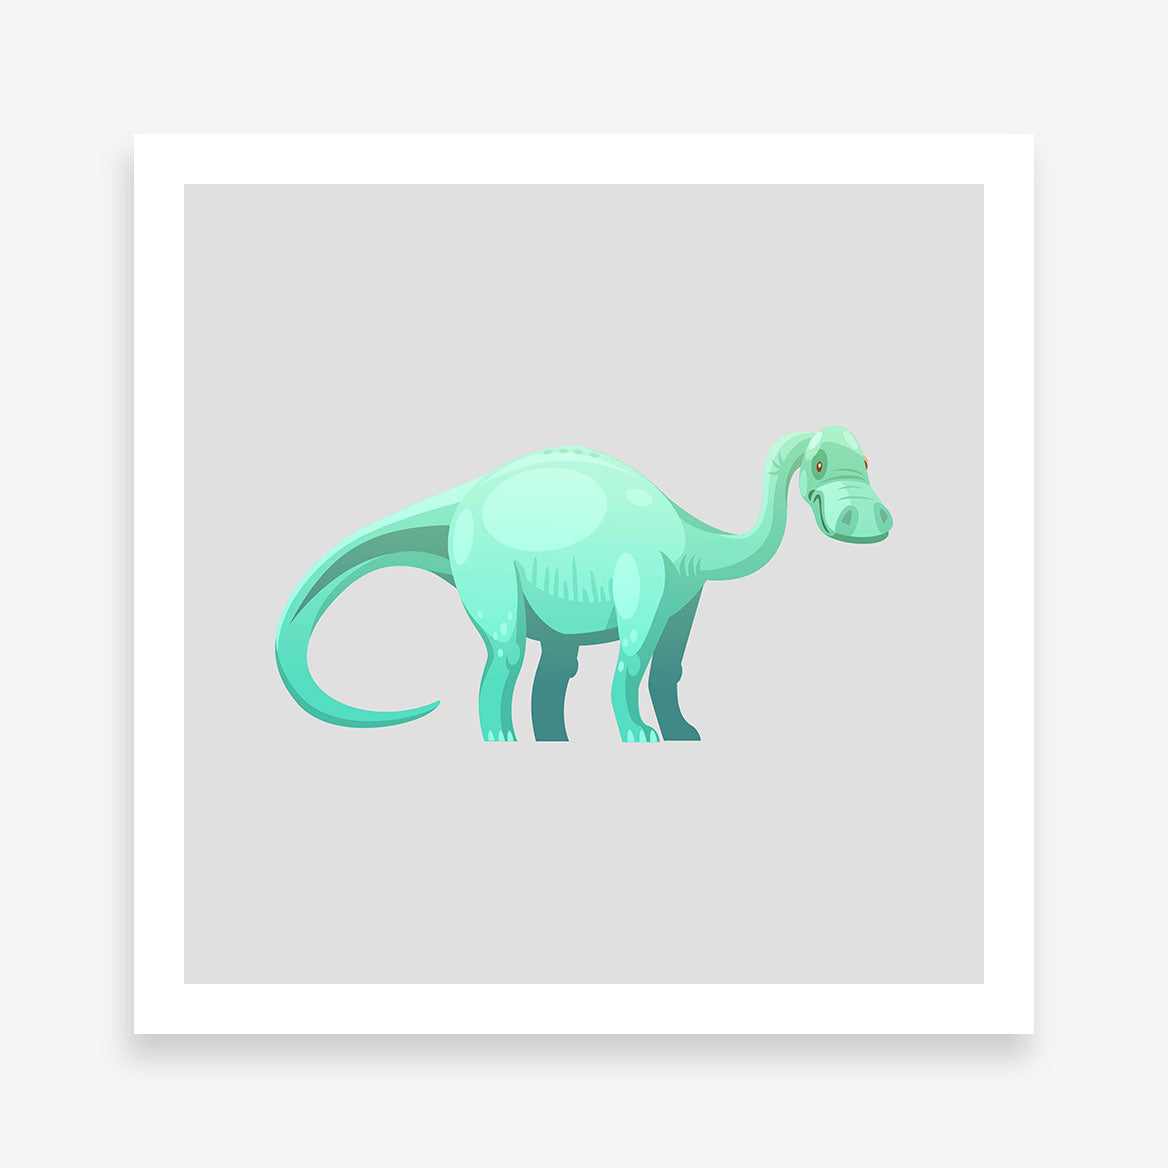 Poster print with a cute green Brontosaurus dinosaur on grey background